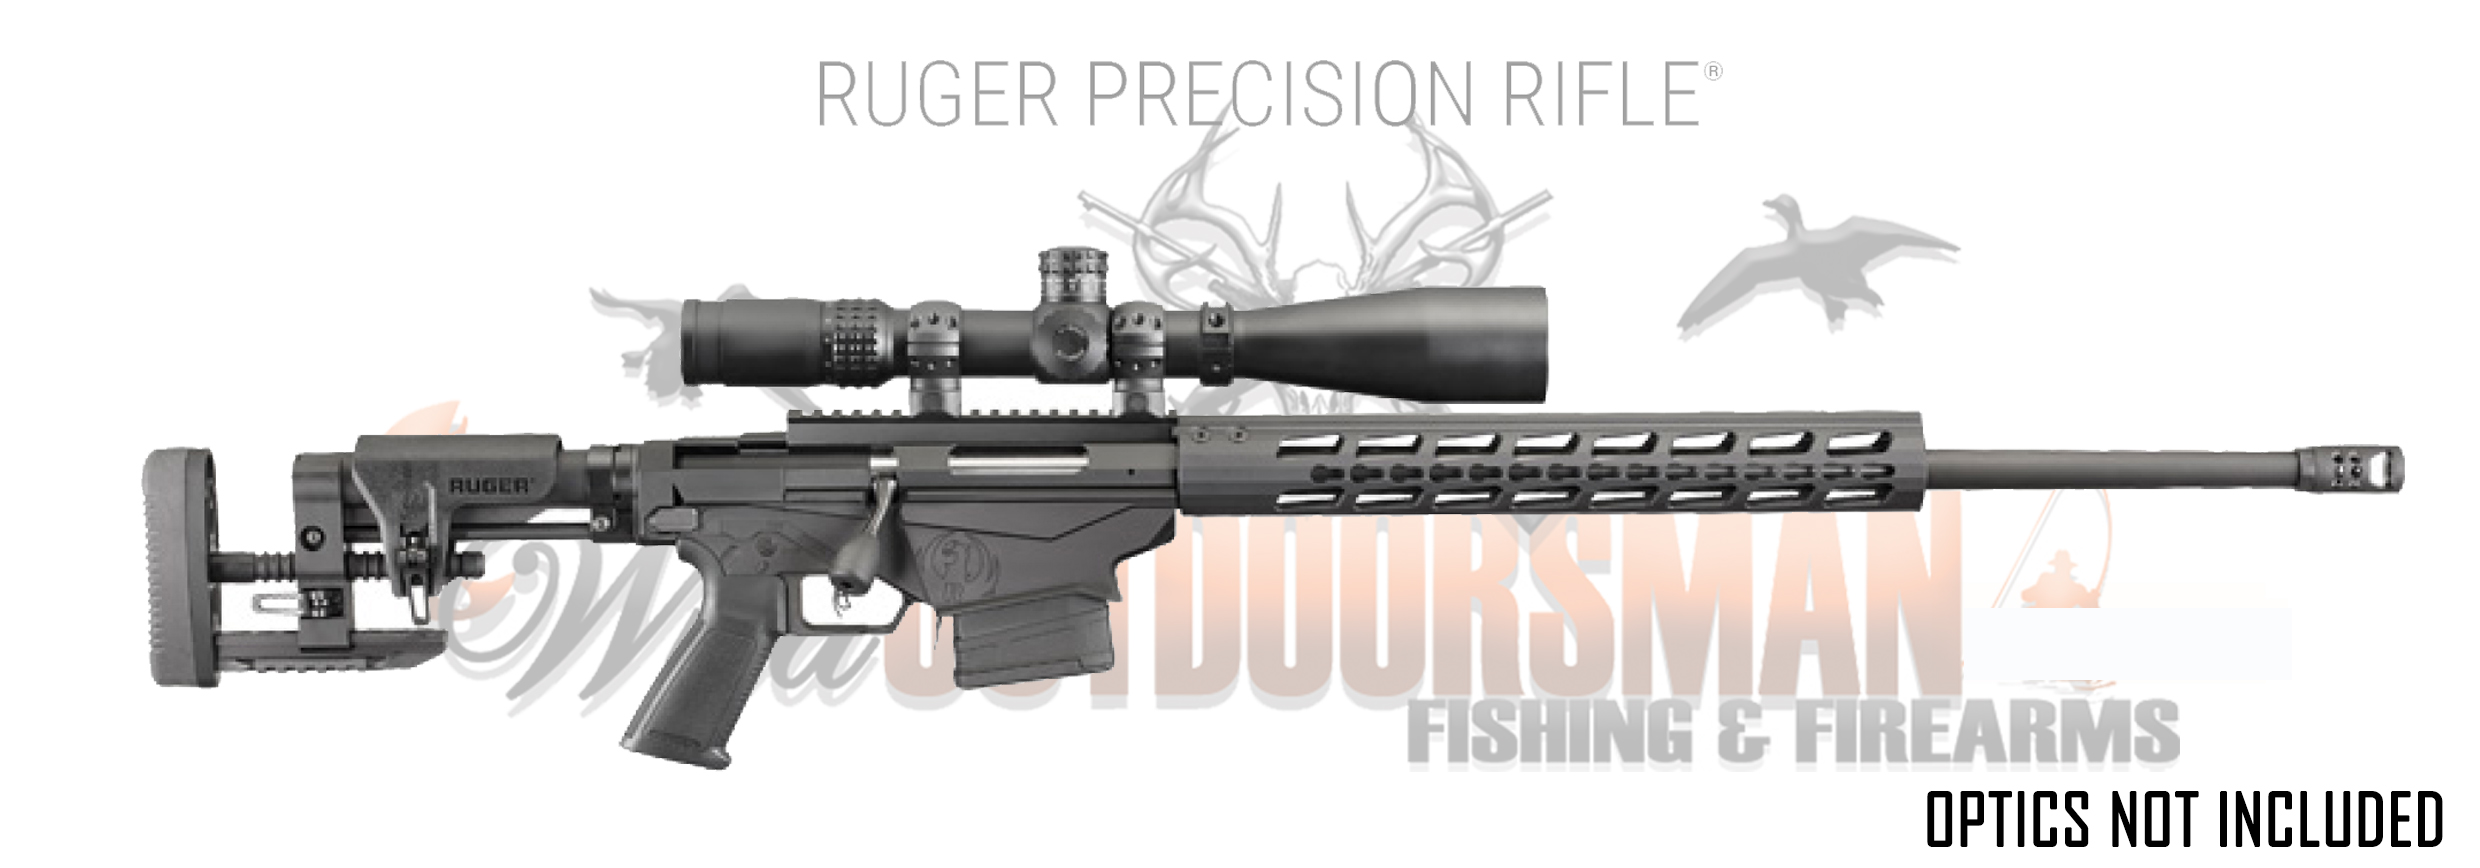 NEW Model Ruger Precision Rifle 6.5 Creedmoor